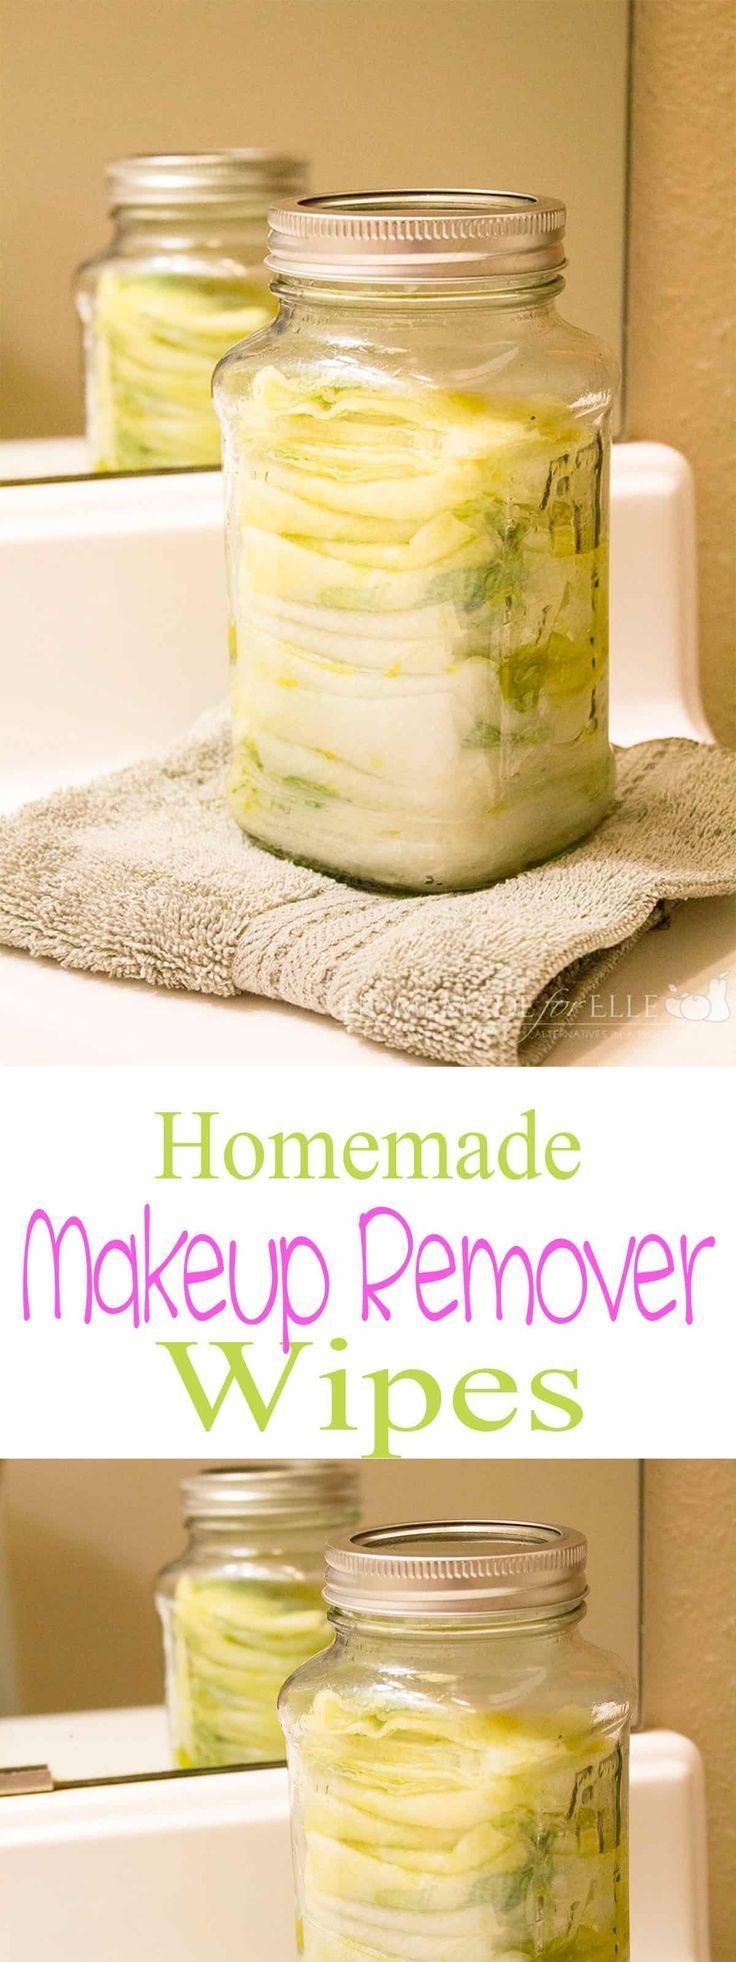 Homemade Makeup Remover Wipes Diy Makeup diy makeup